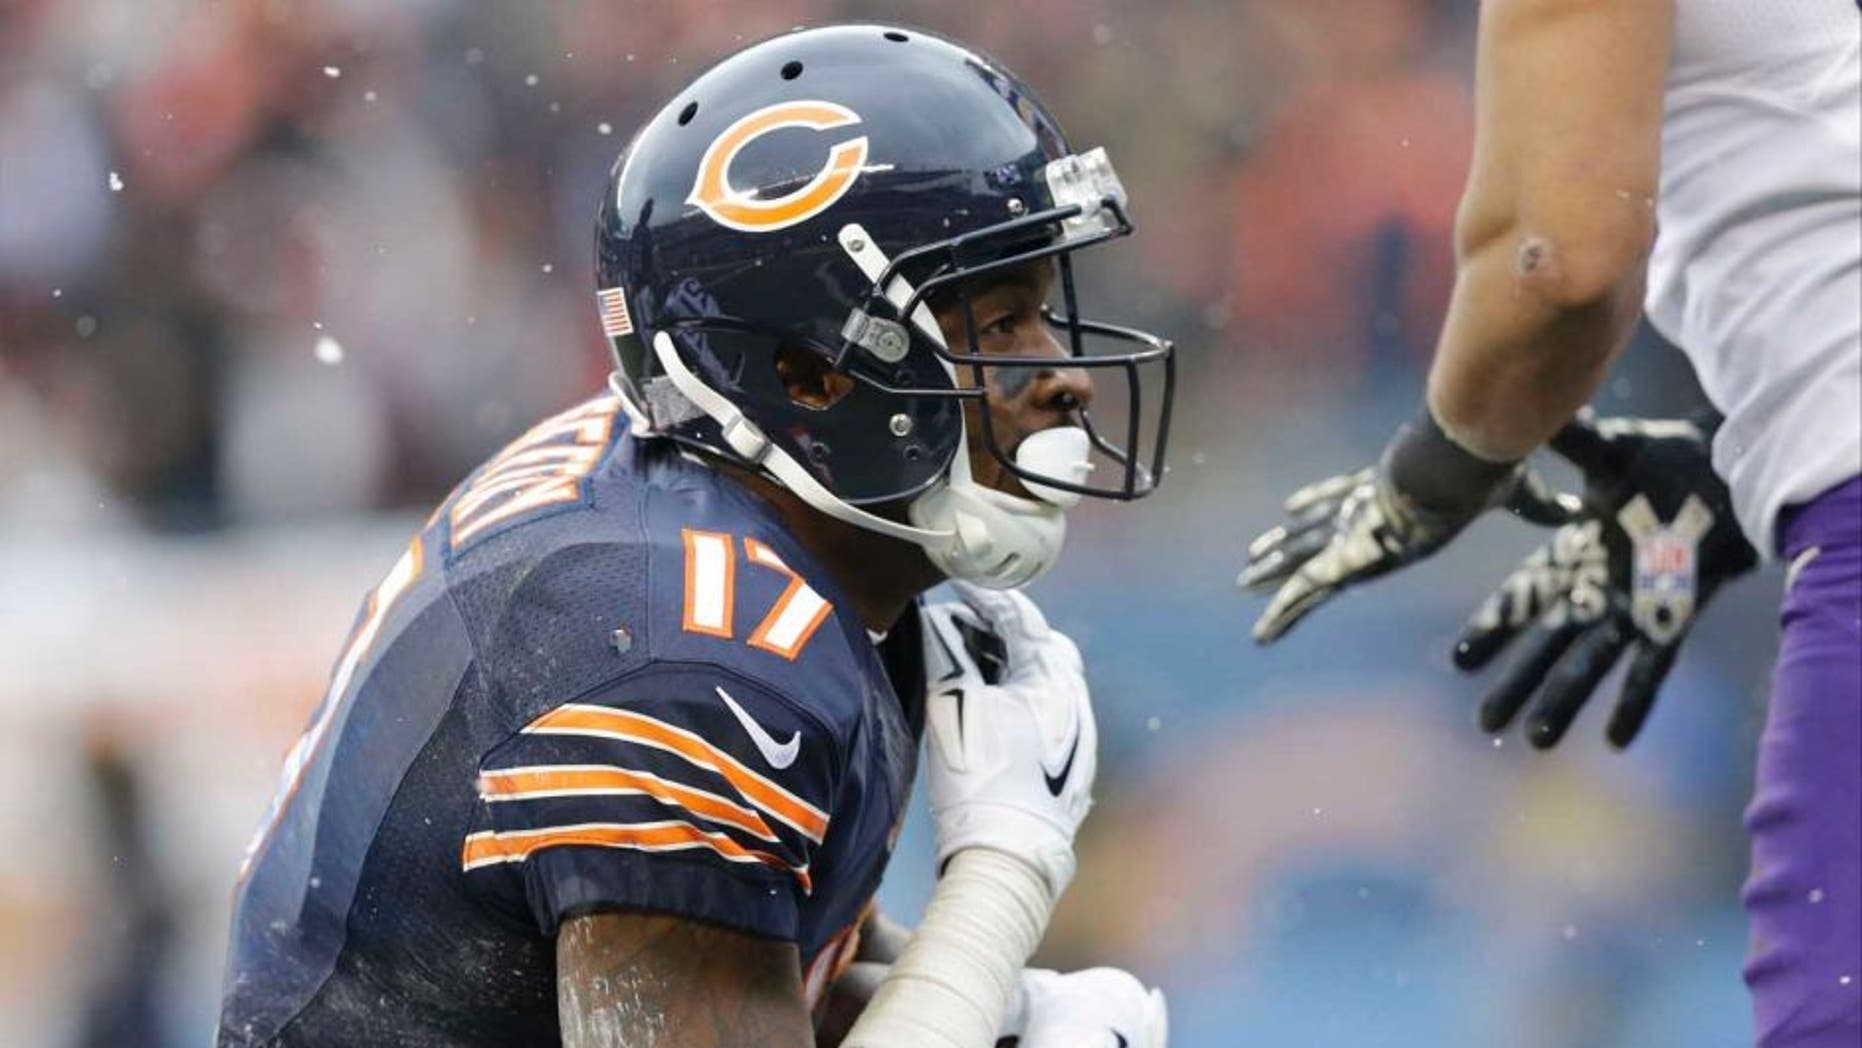 Chicago Bears wide receiver Alshon Jeffery kneels down after catching a touchdown pass during the first half.